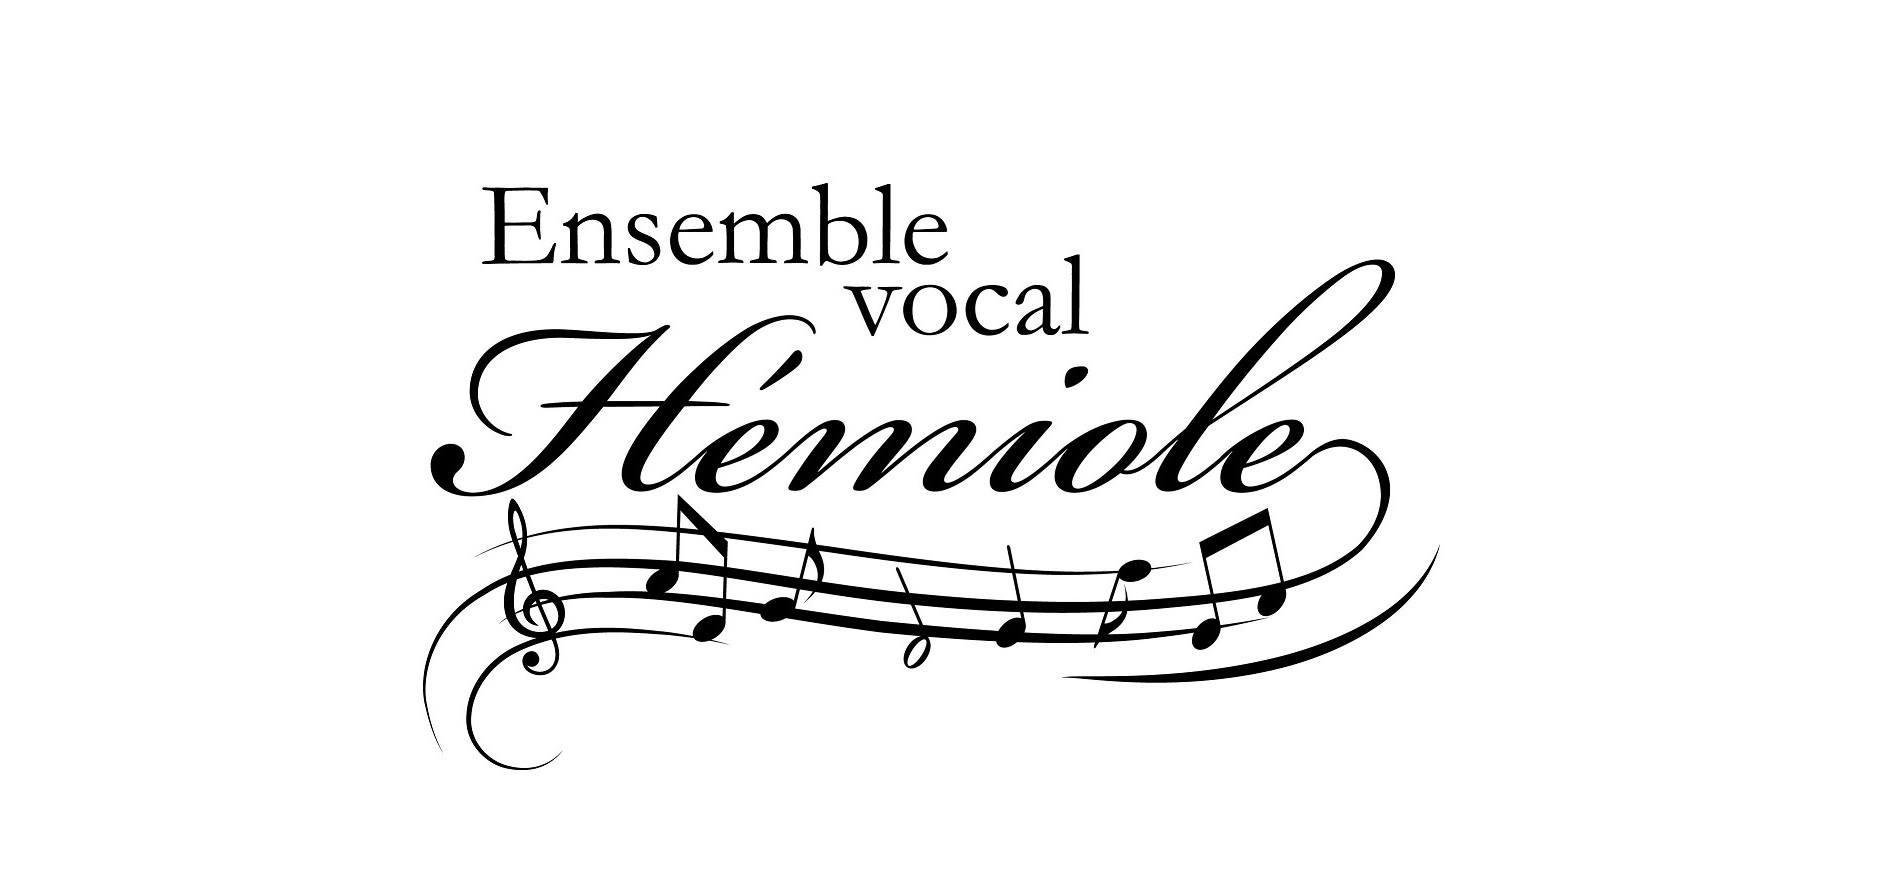 Ensemble vocal Hémiole